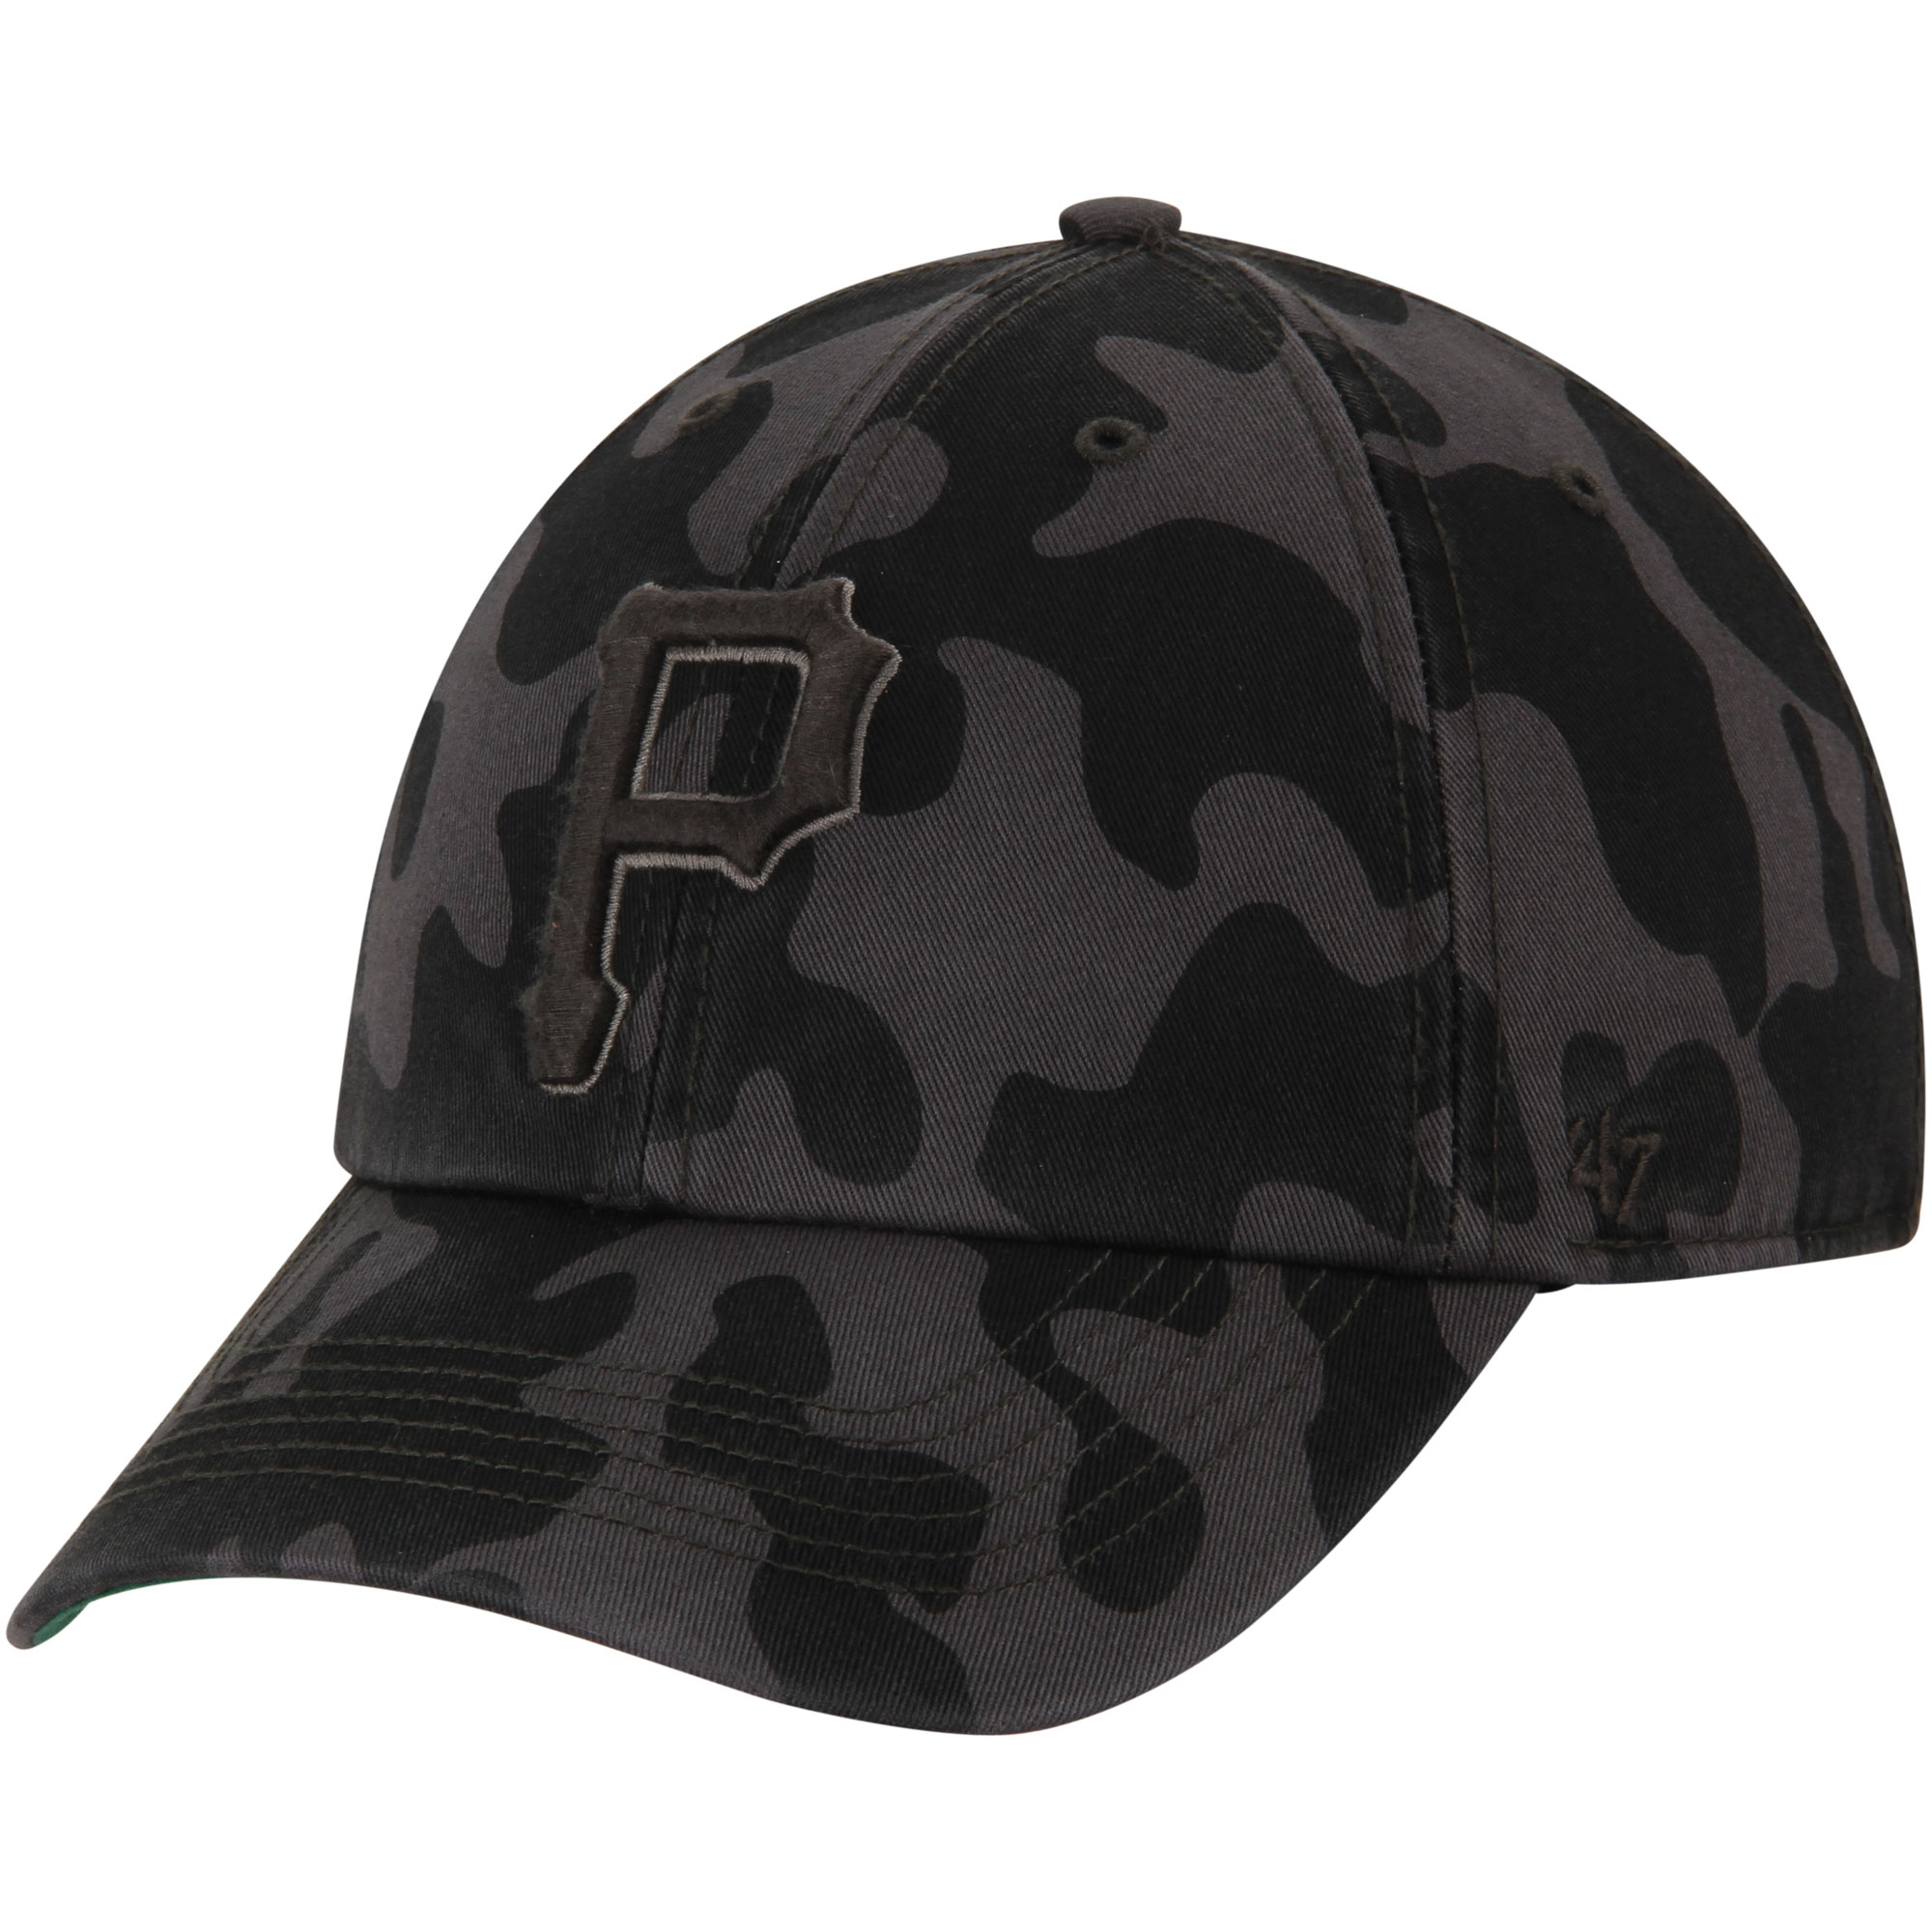 Pittsburgh Pirates '47 Flintlock Franchise Fitted Hat - Charcoal